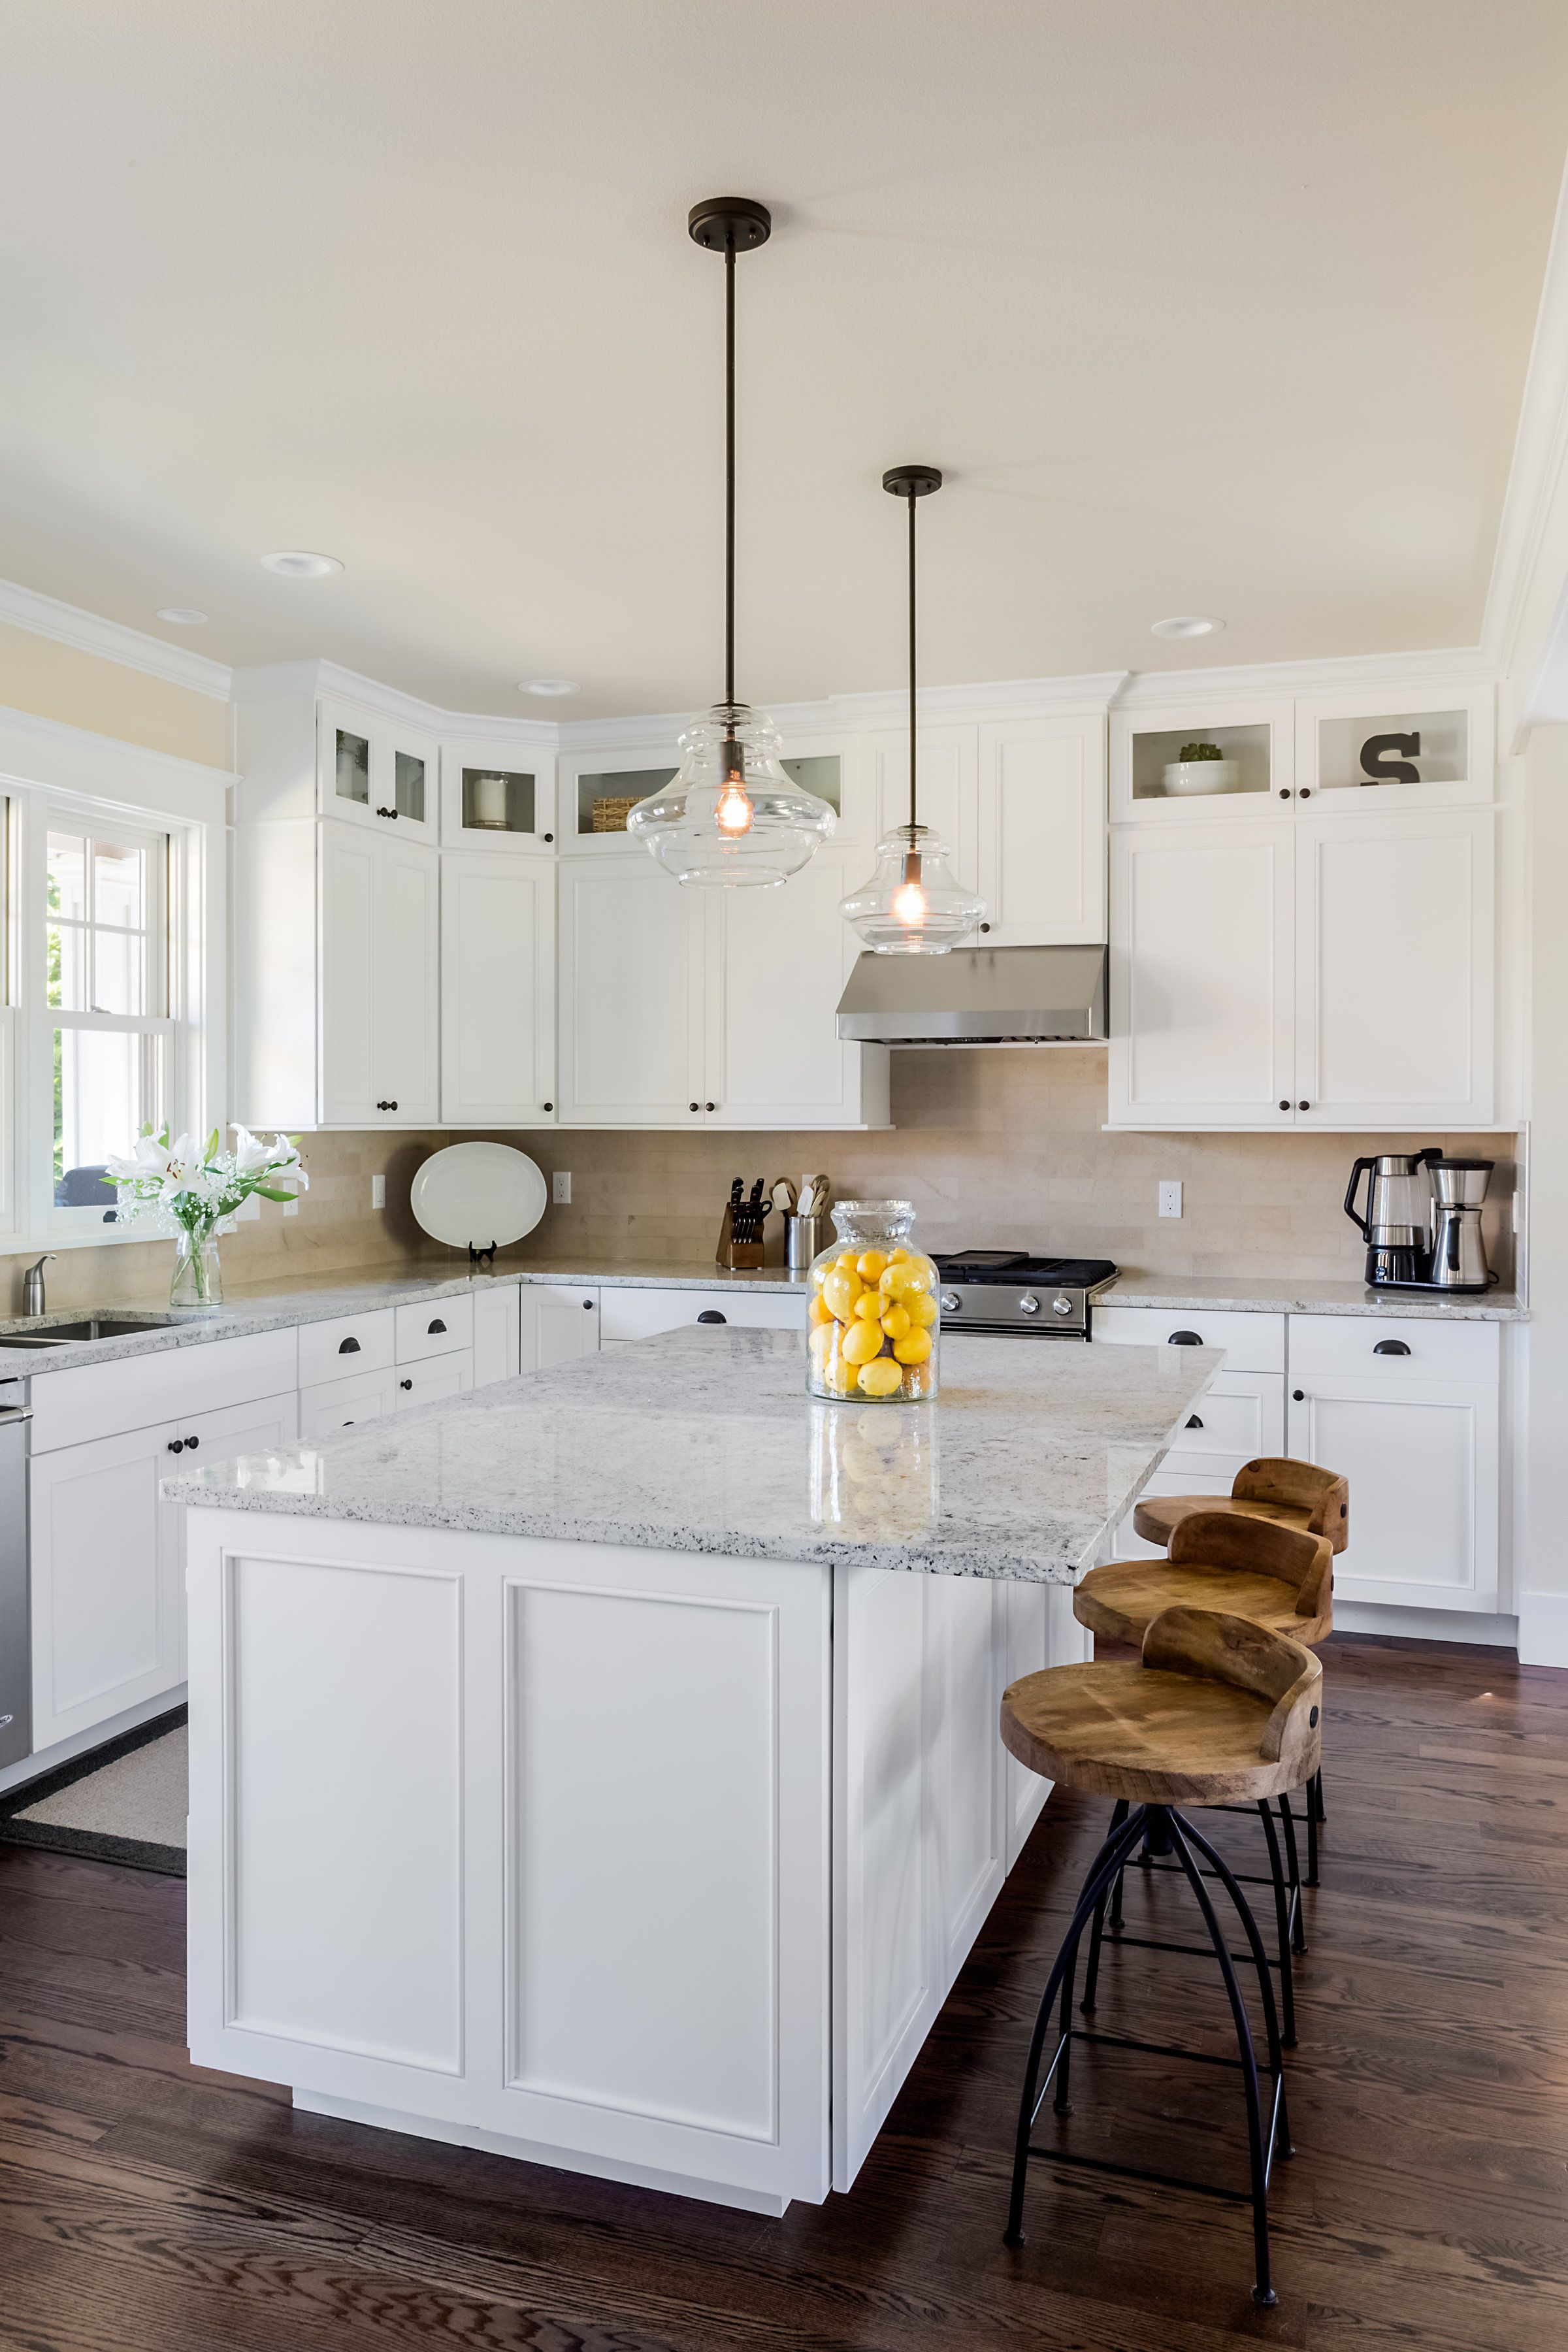 craftsman style white kitchen kitchen remodel craftsman kitchen design your kitchen on kitchen remodel not white id=91165